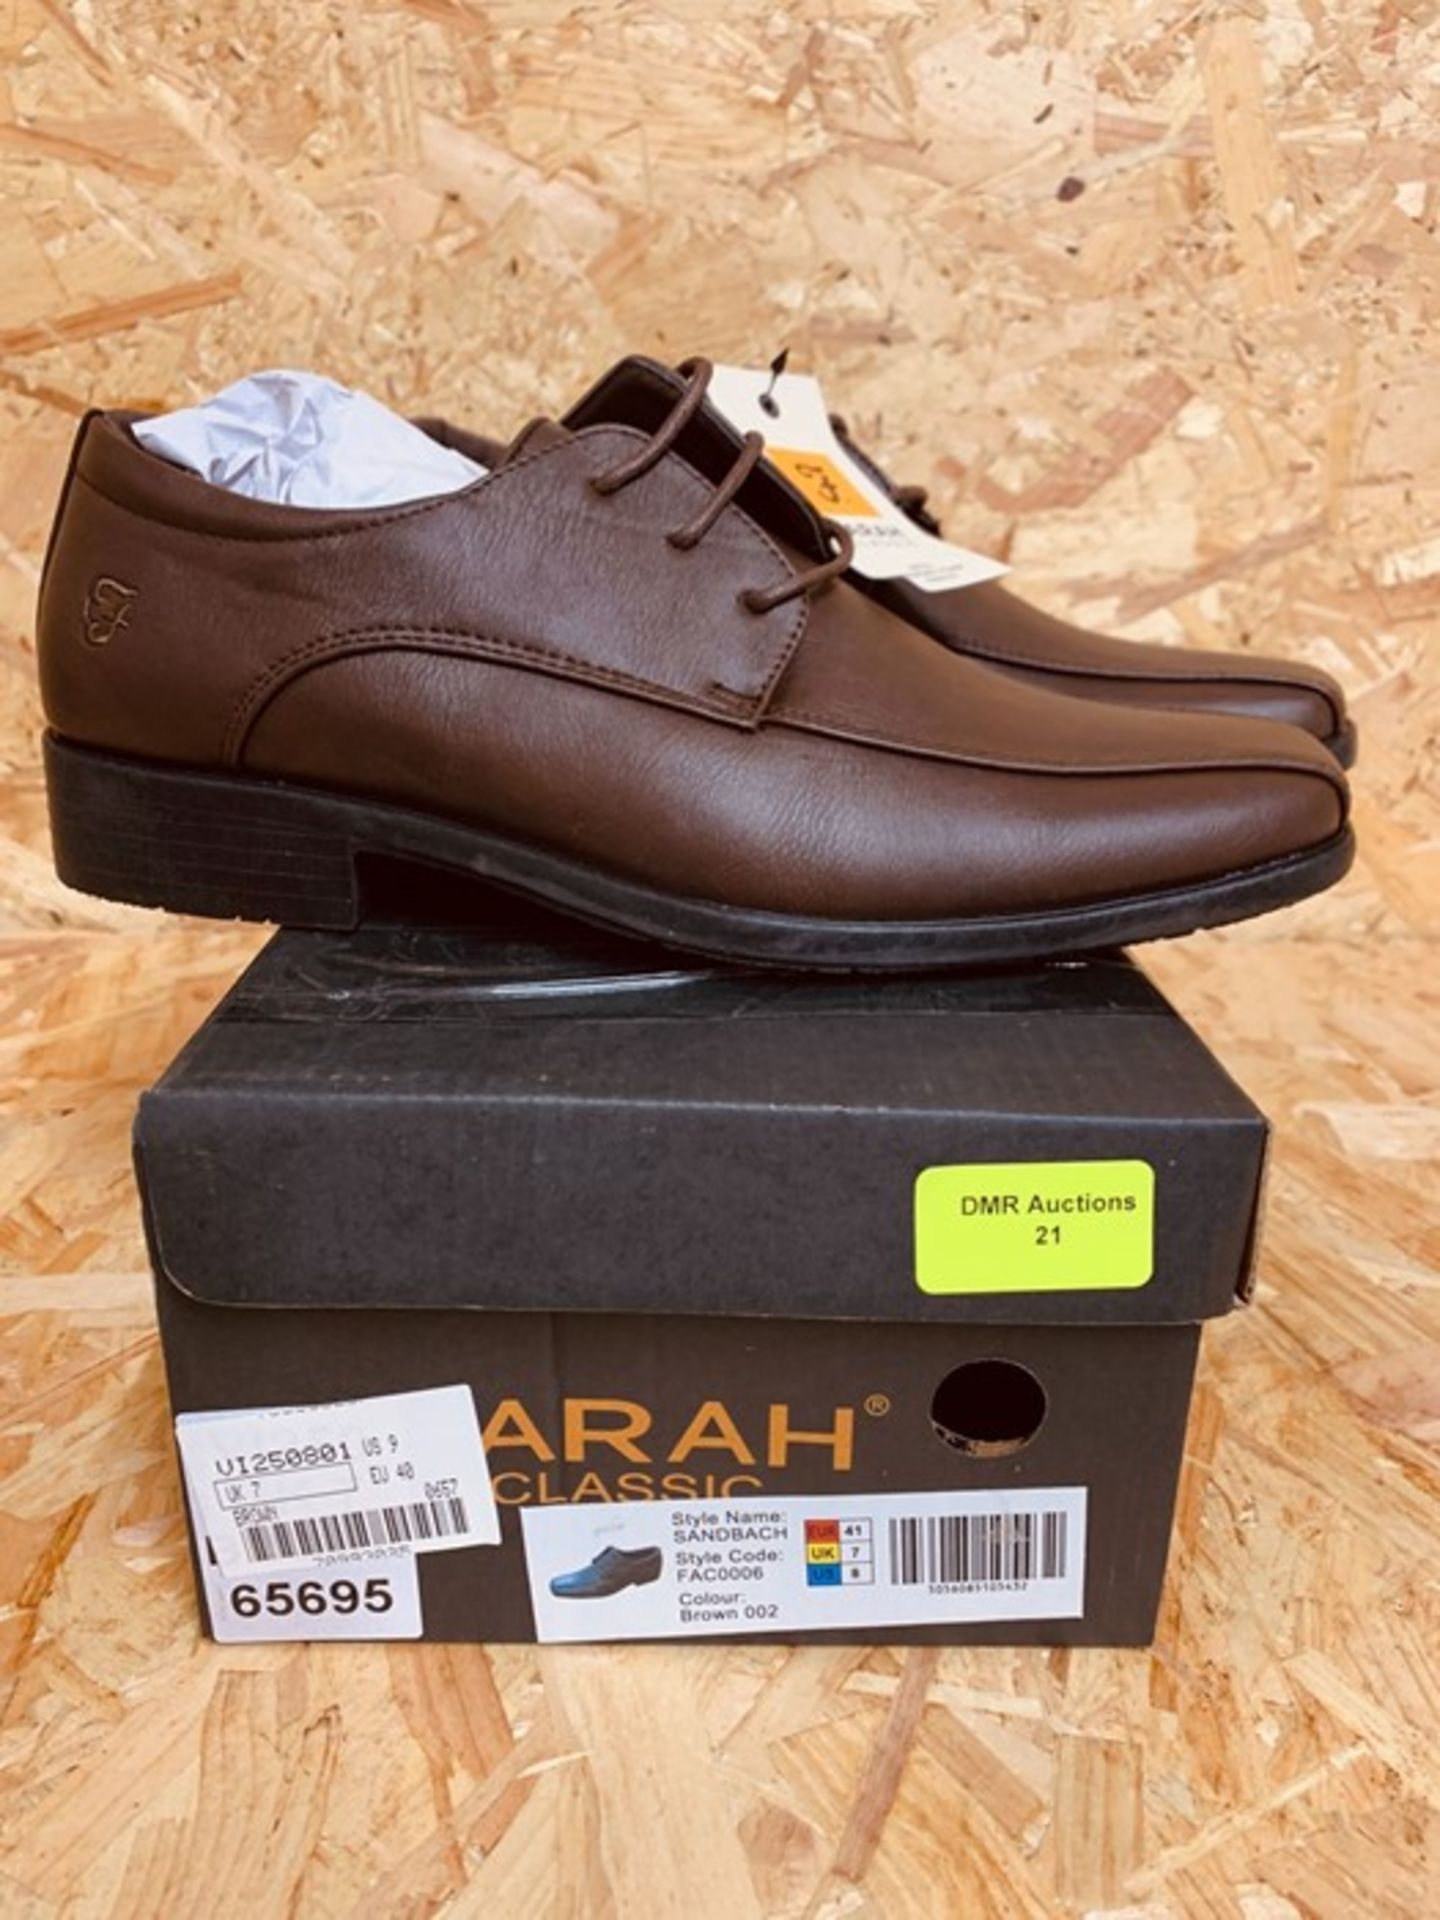 FARAH MENS SANDBACH LEATHER SHOES - UK SIZE 7/BROWN